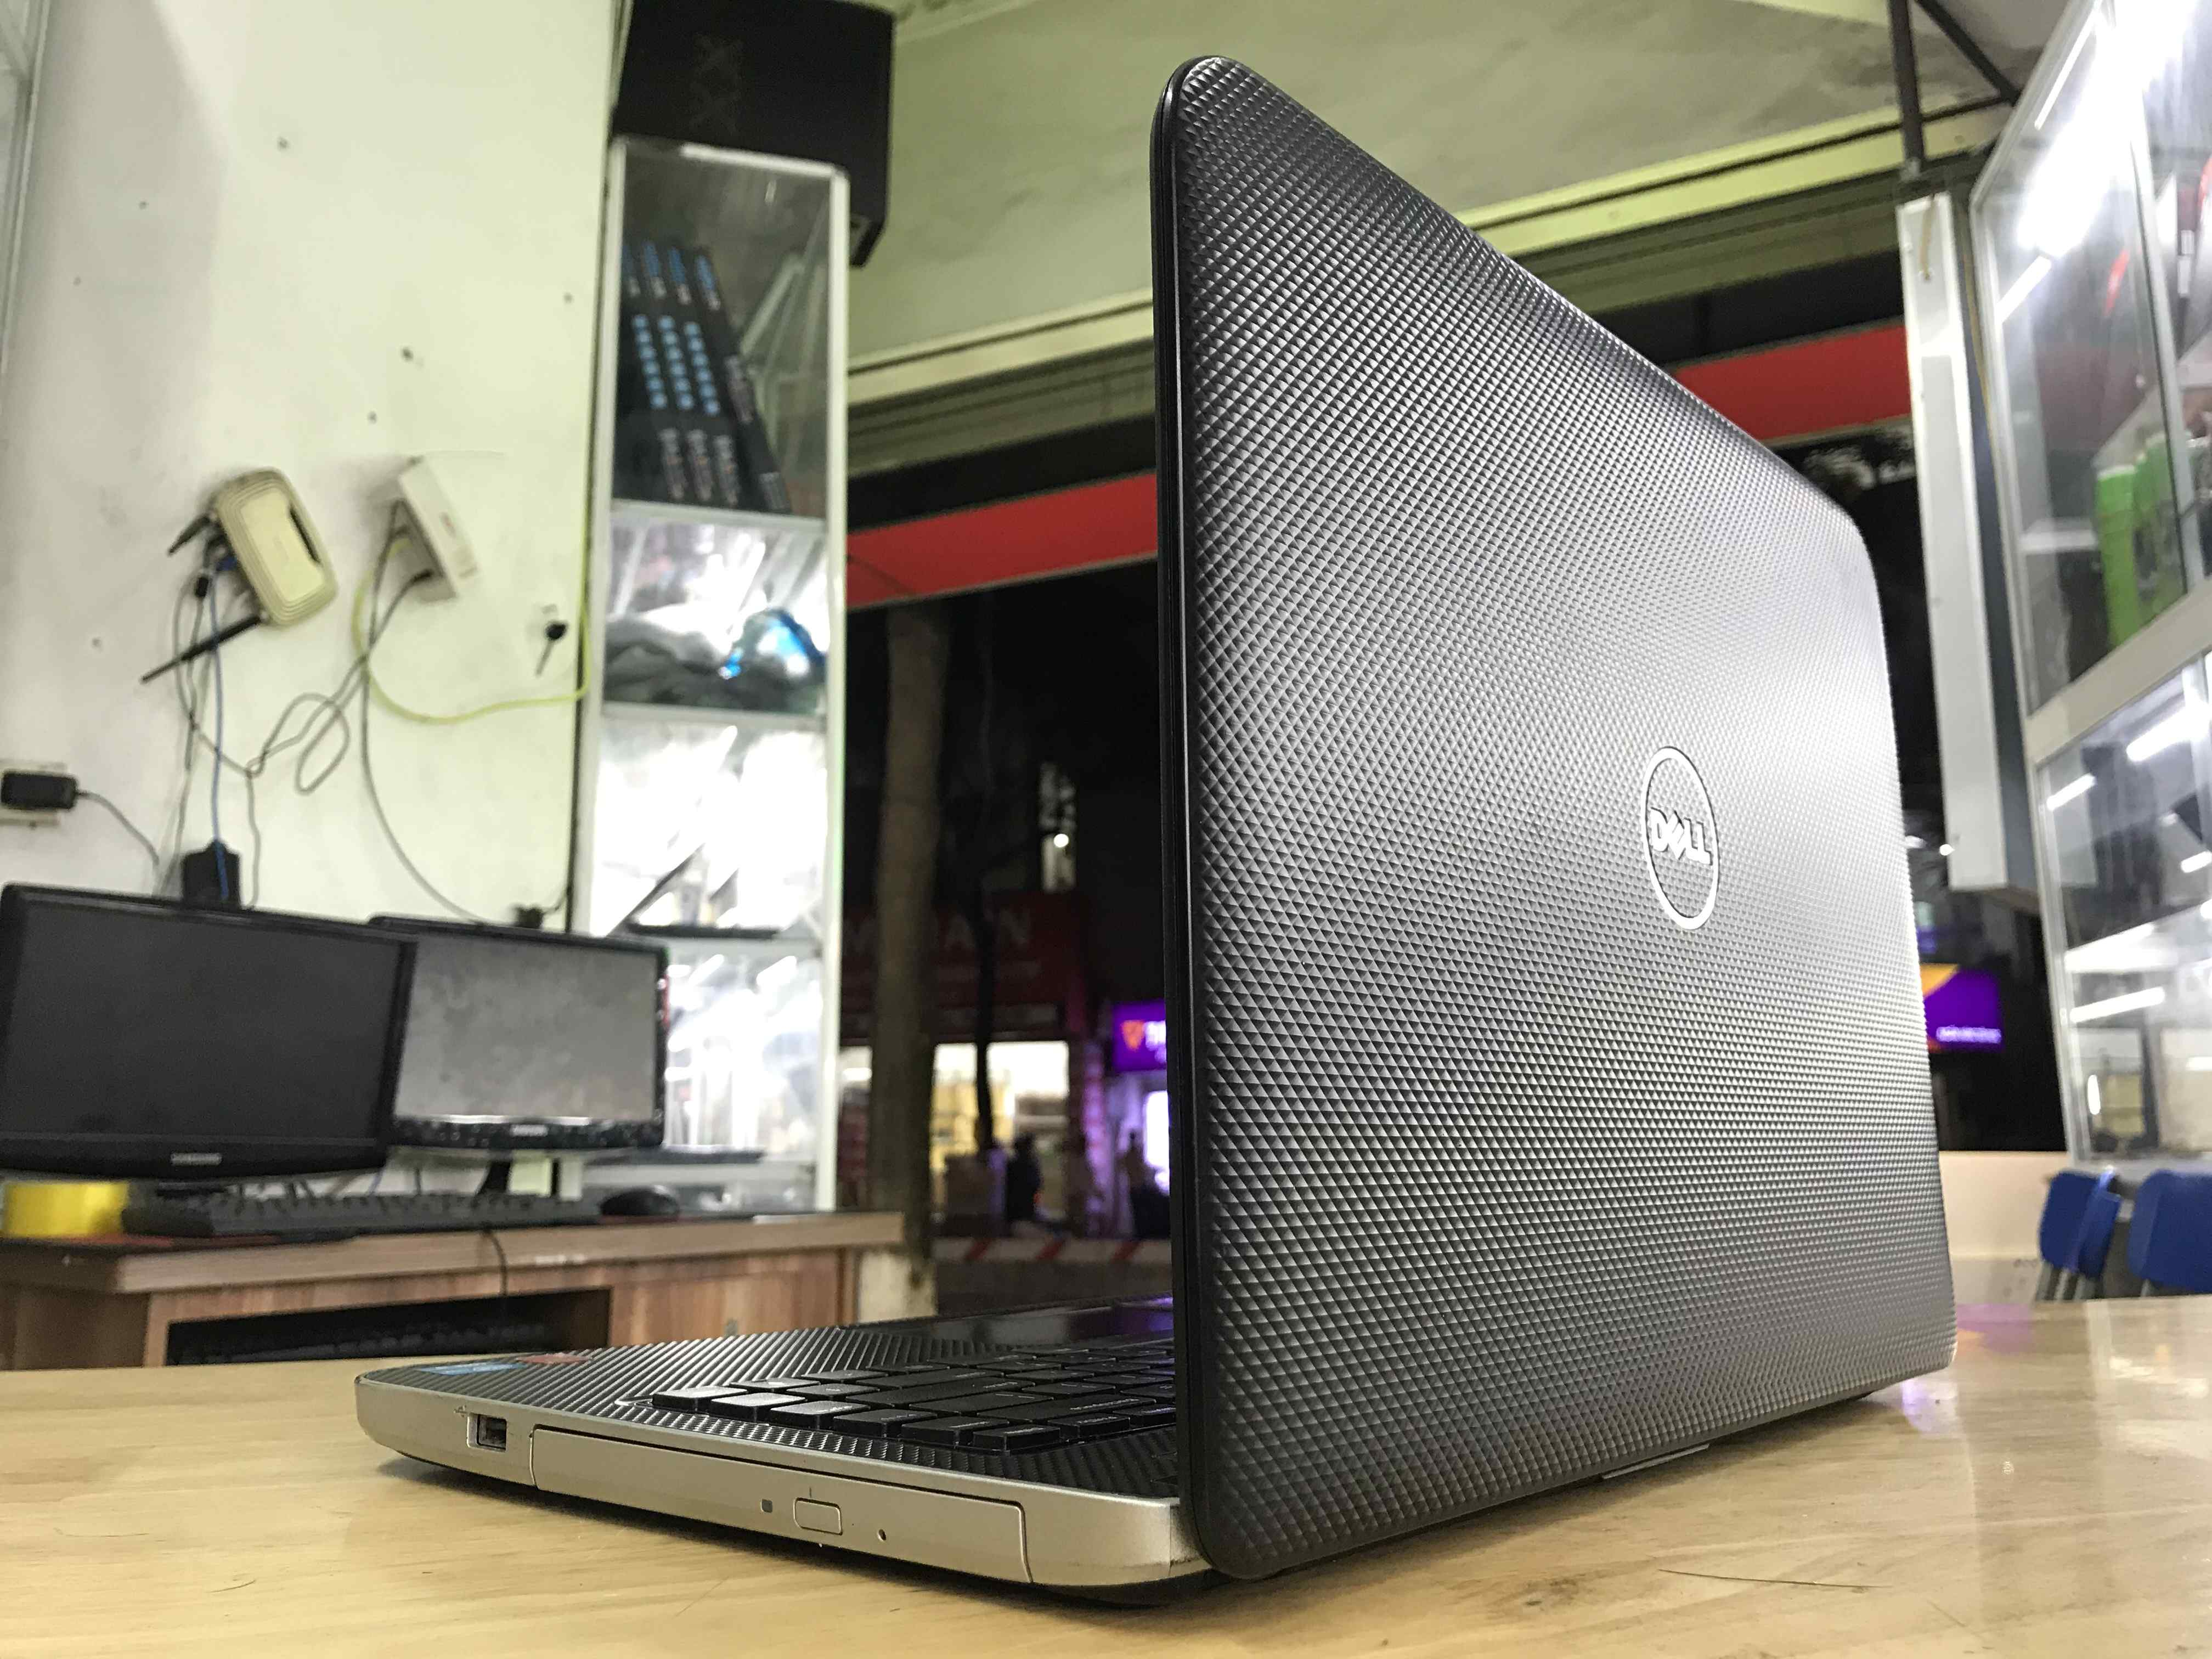 Bán laptop cũ dell vostro 2421